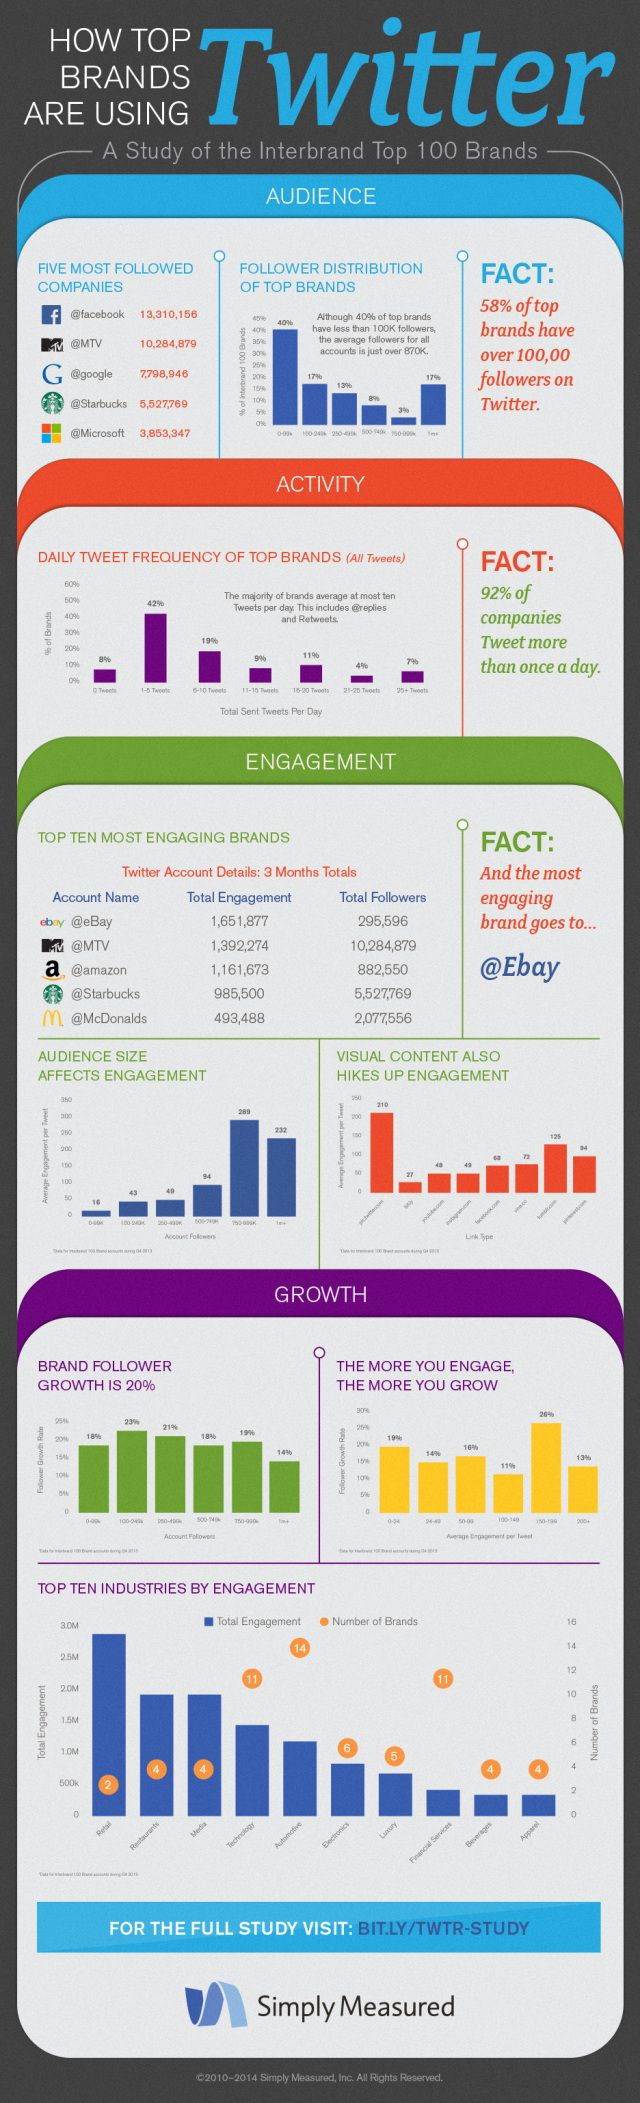 How Top brands are using Twitter  #infografia #infographic #socialmedia #marketing